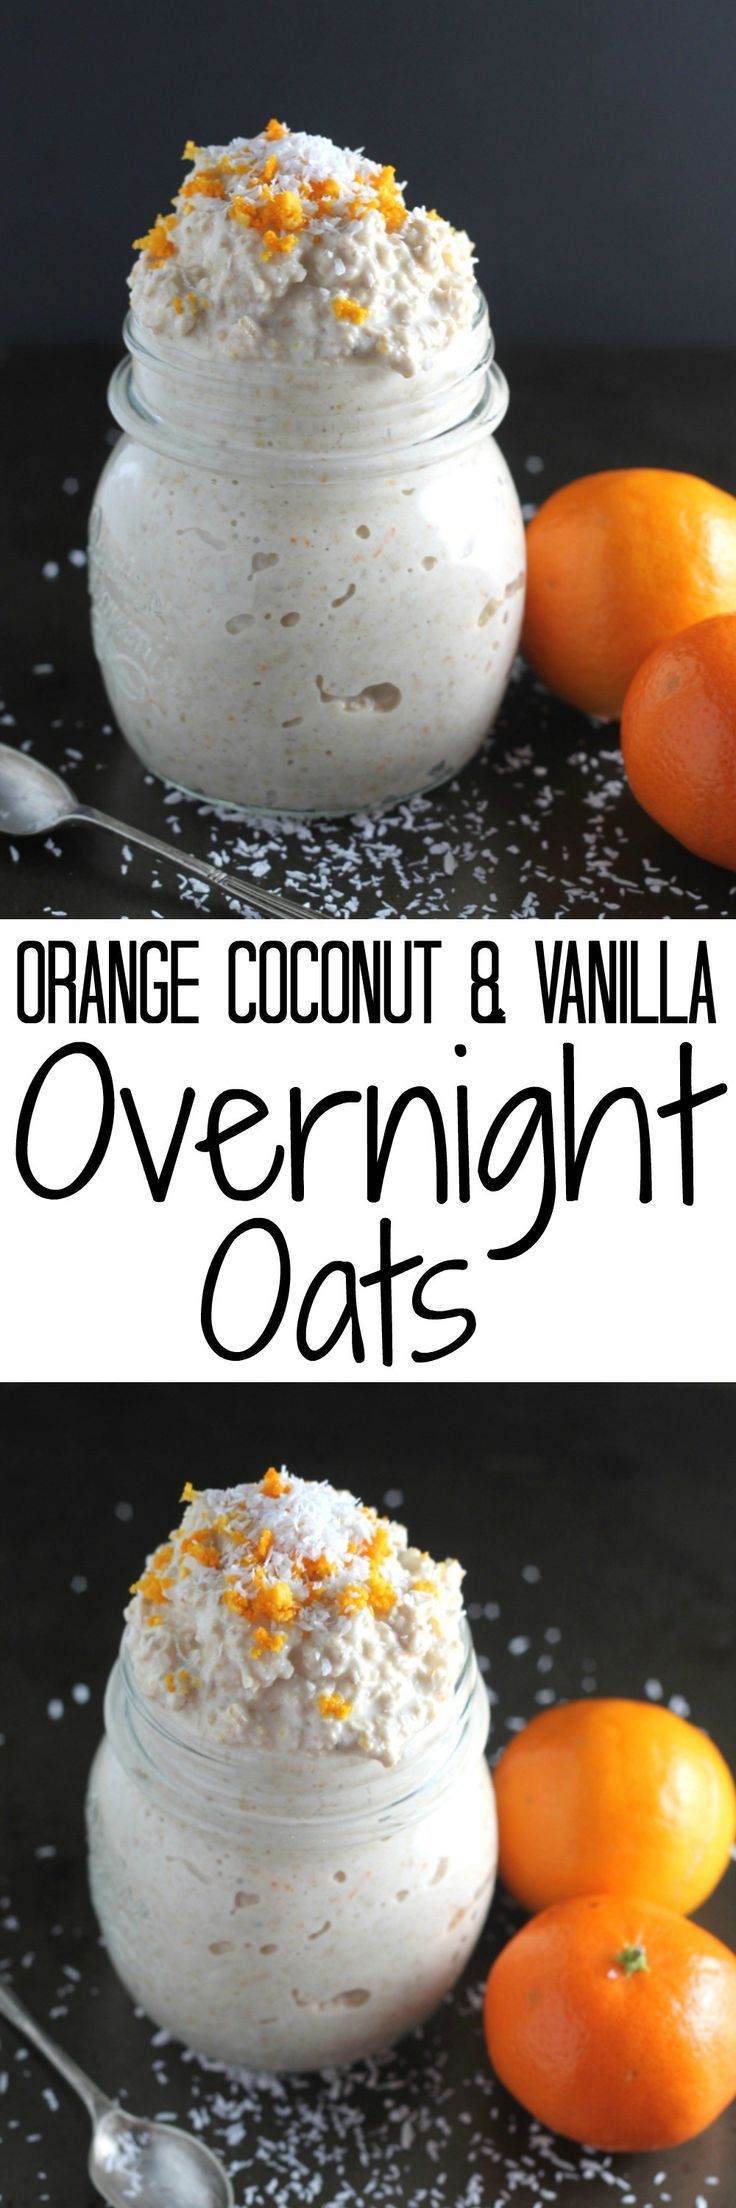 Delicious and healthy, this easy Overnight Oats recipe with orange, coconut and vanilla is sure to put a spring in your step in the morning!